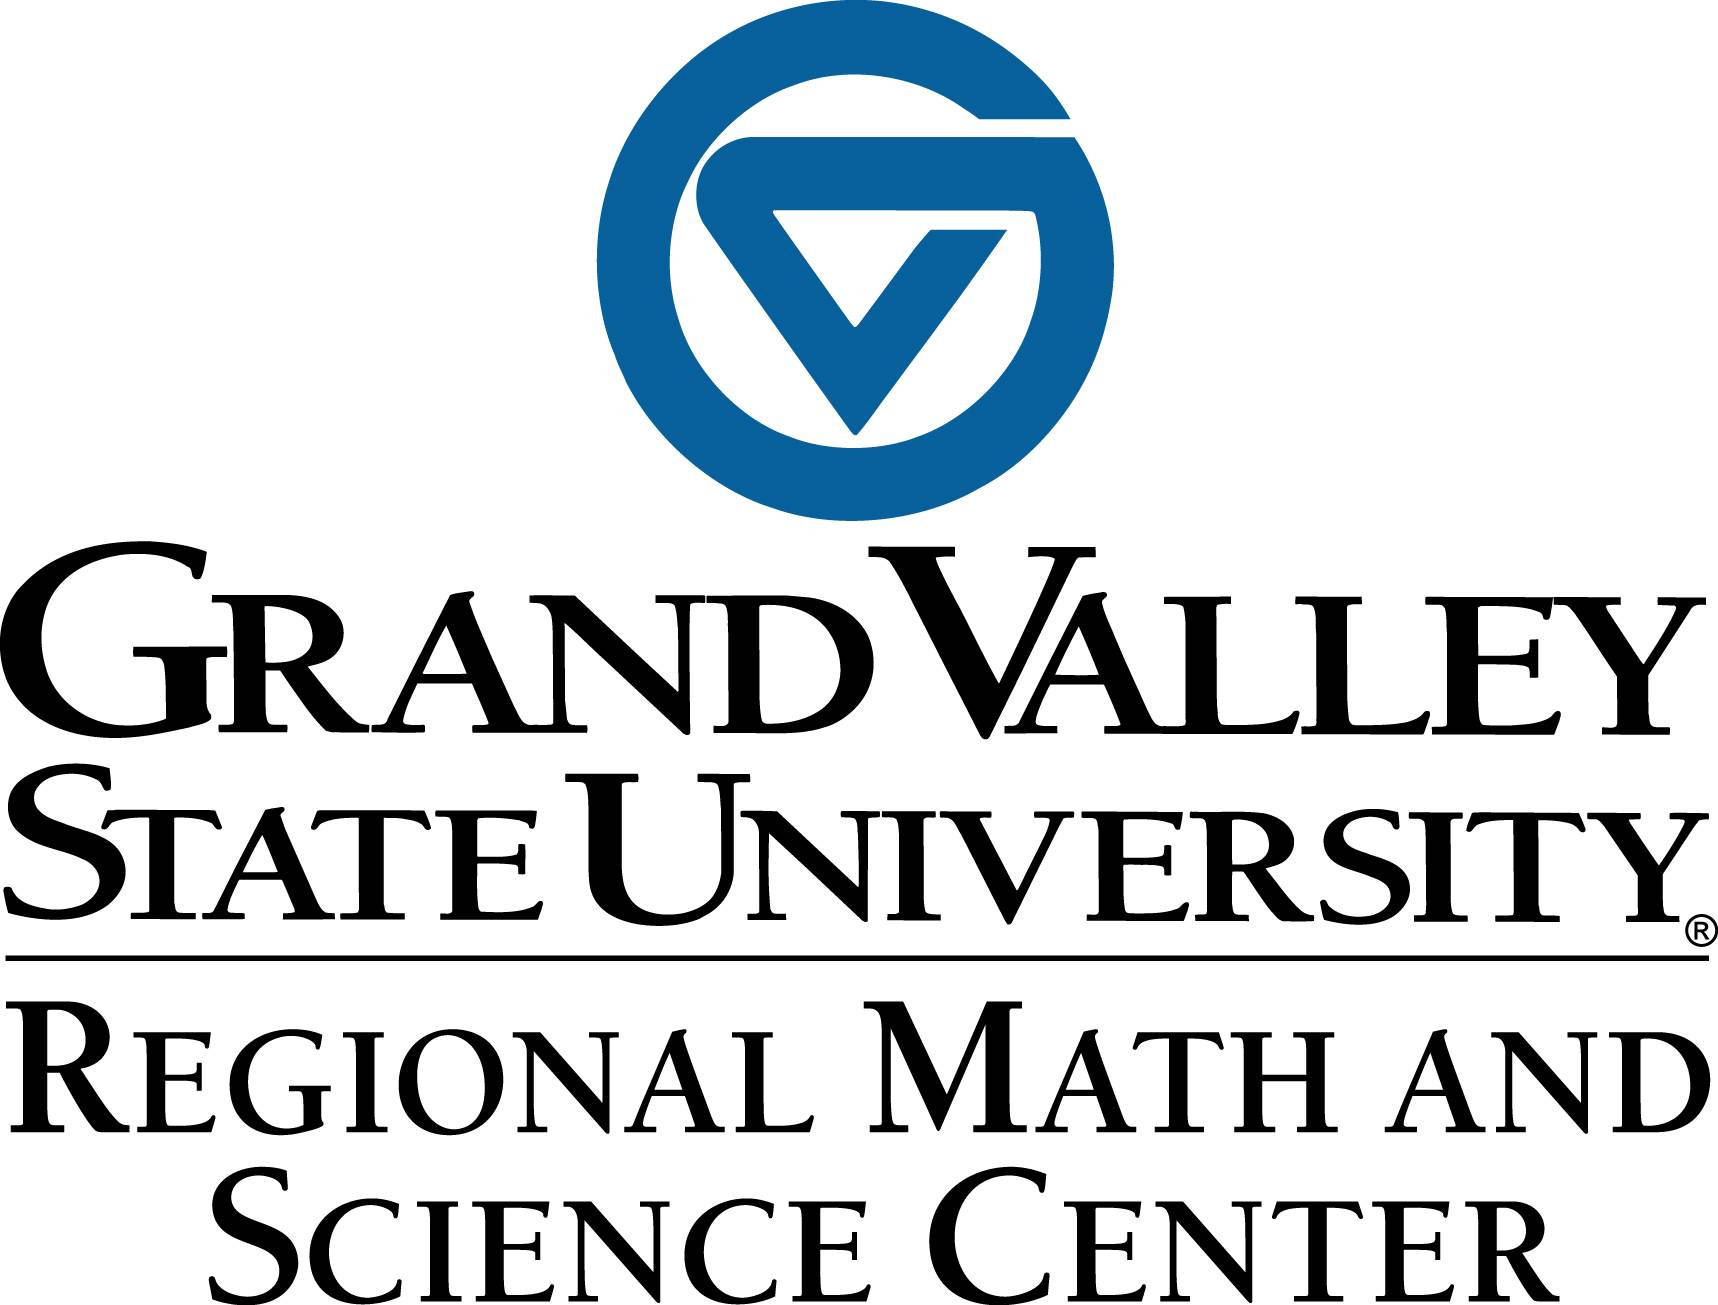 Regional Math and Science Center logo